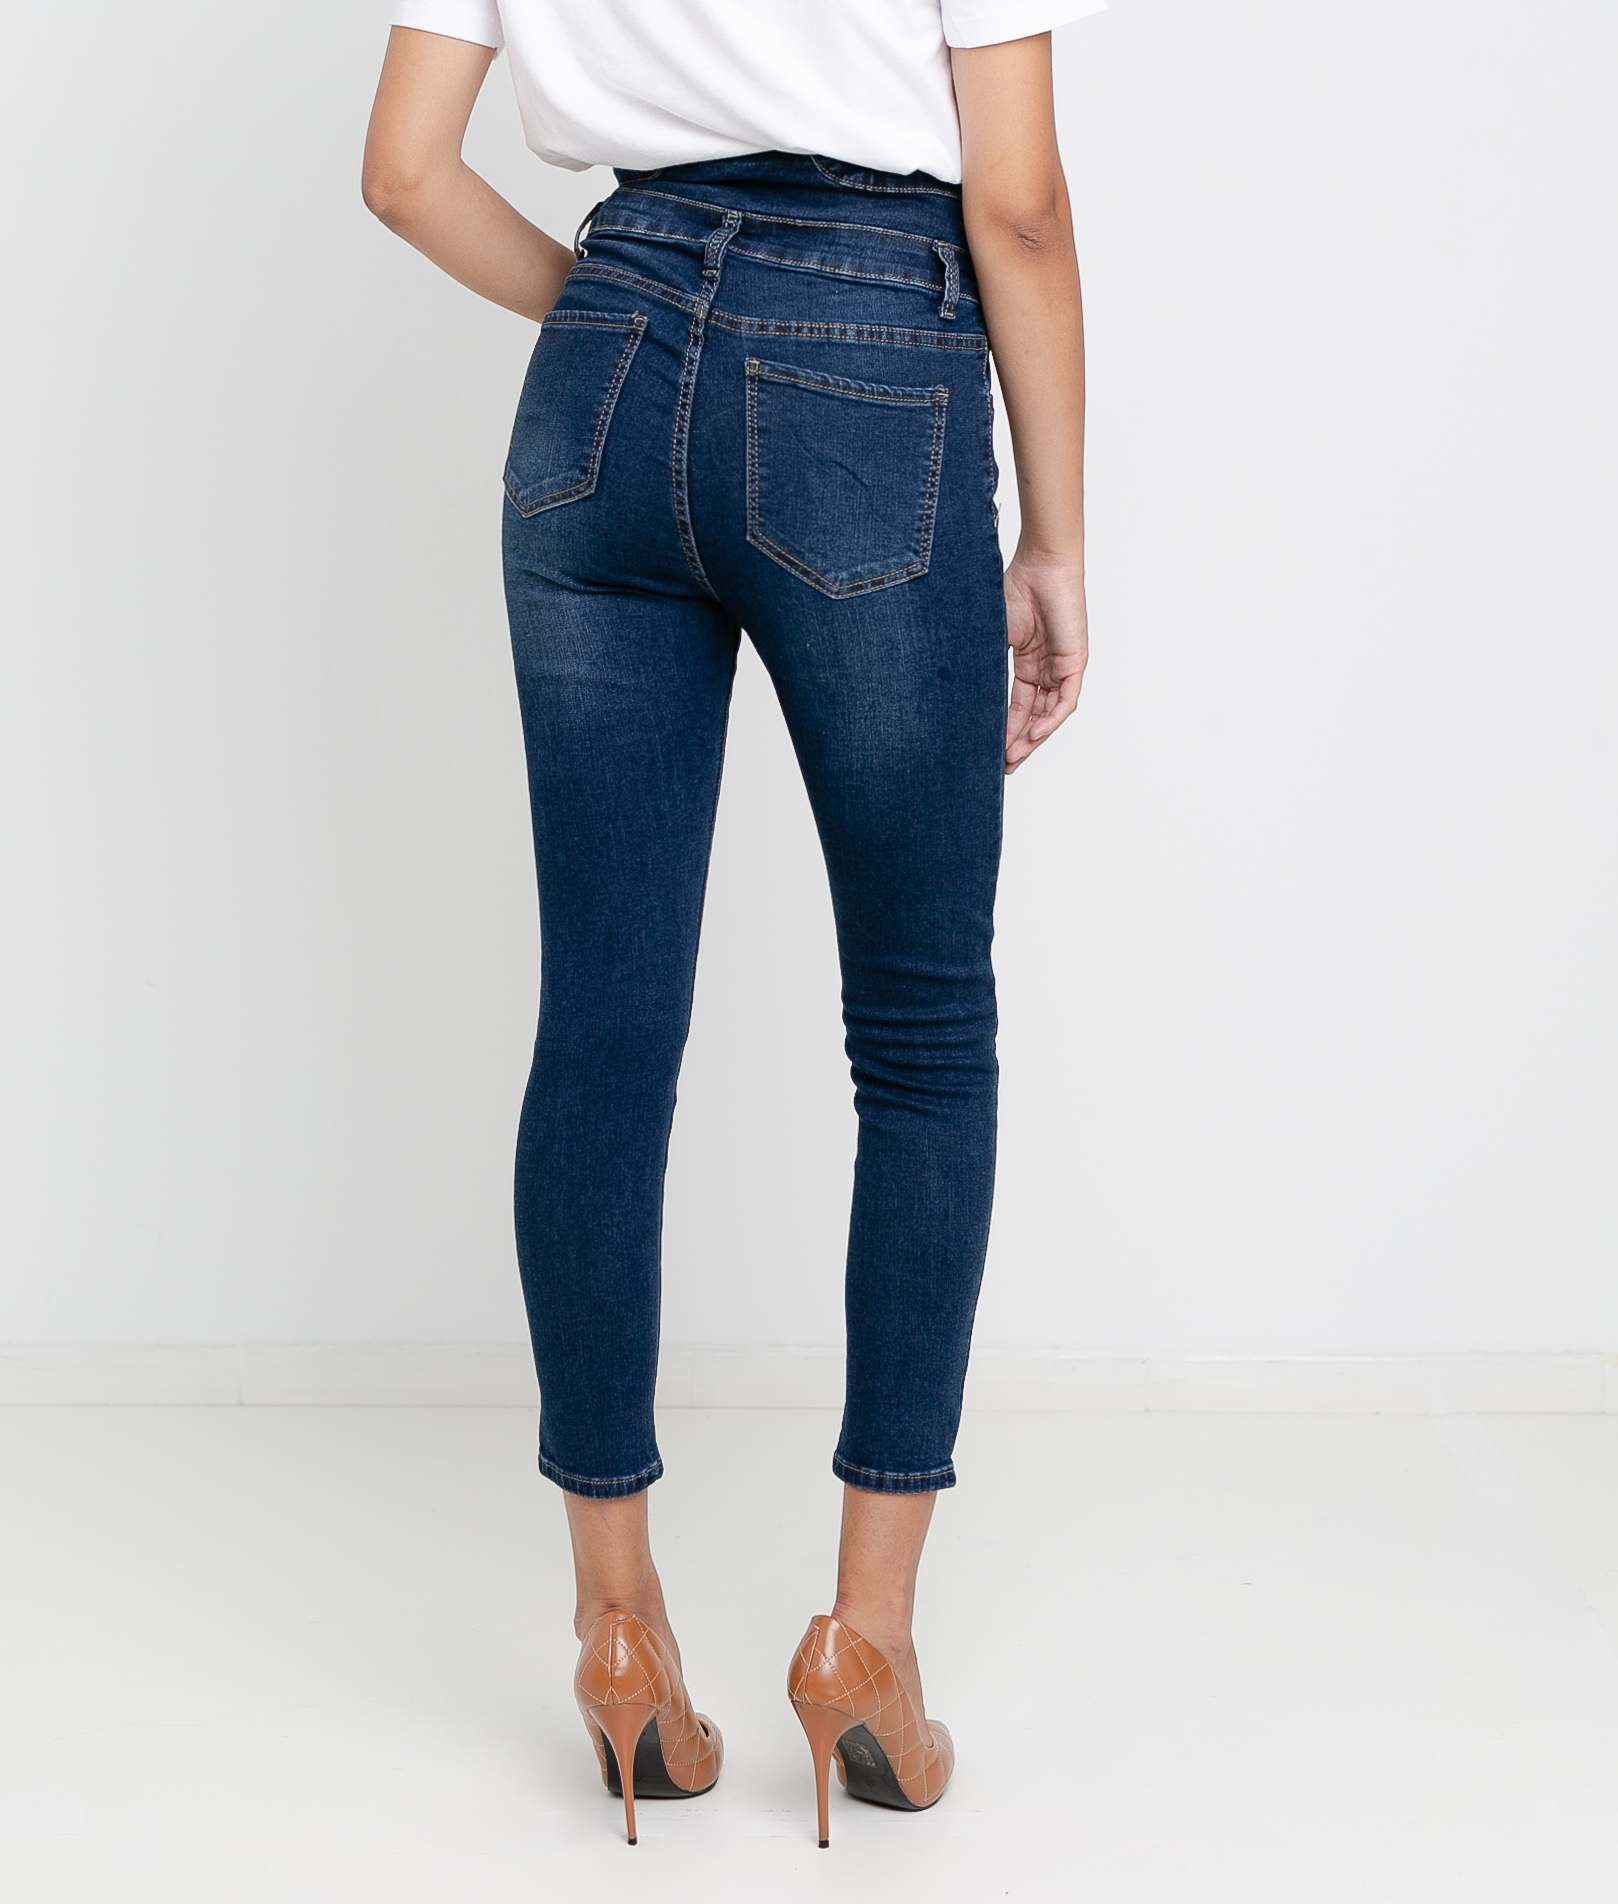 JADER TROUSERS - DENIM